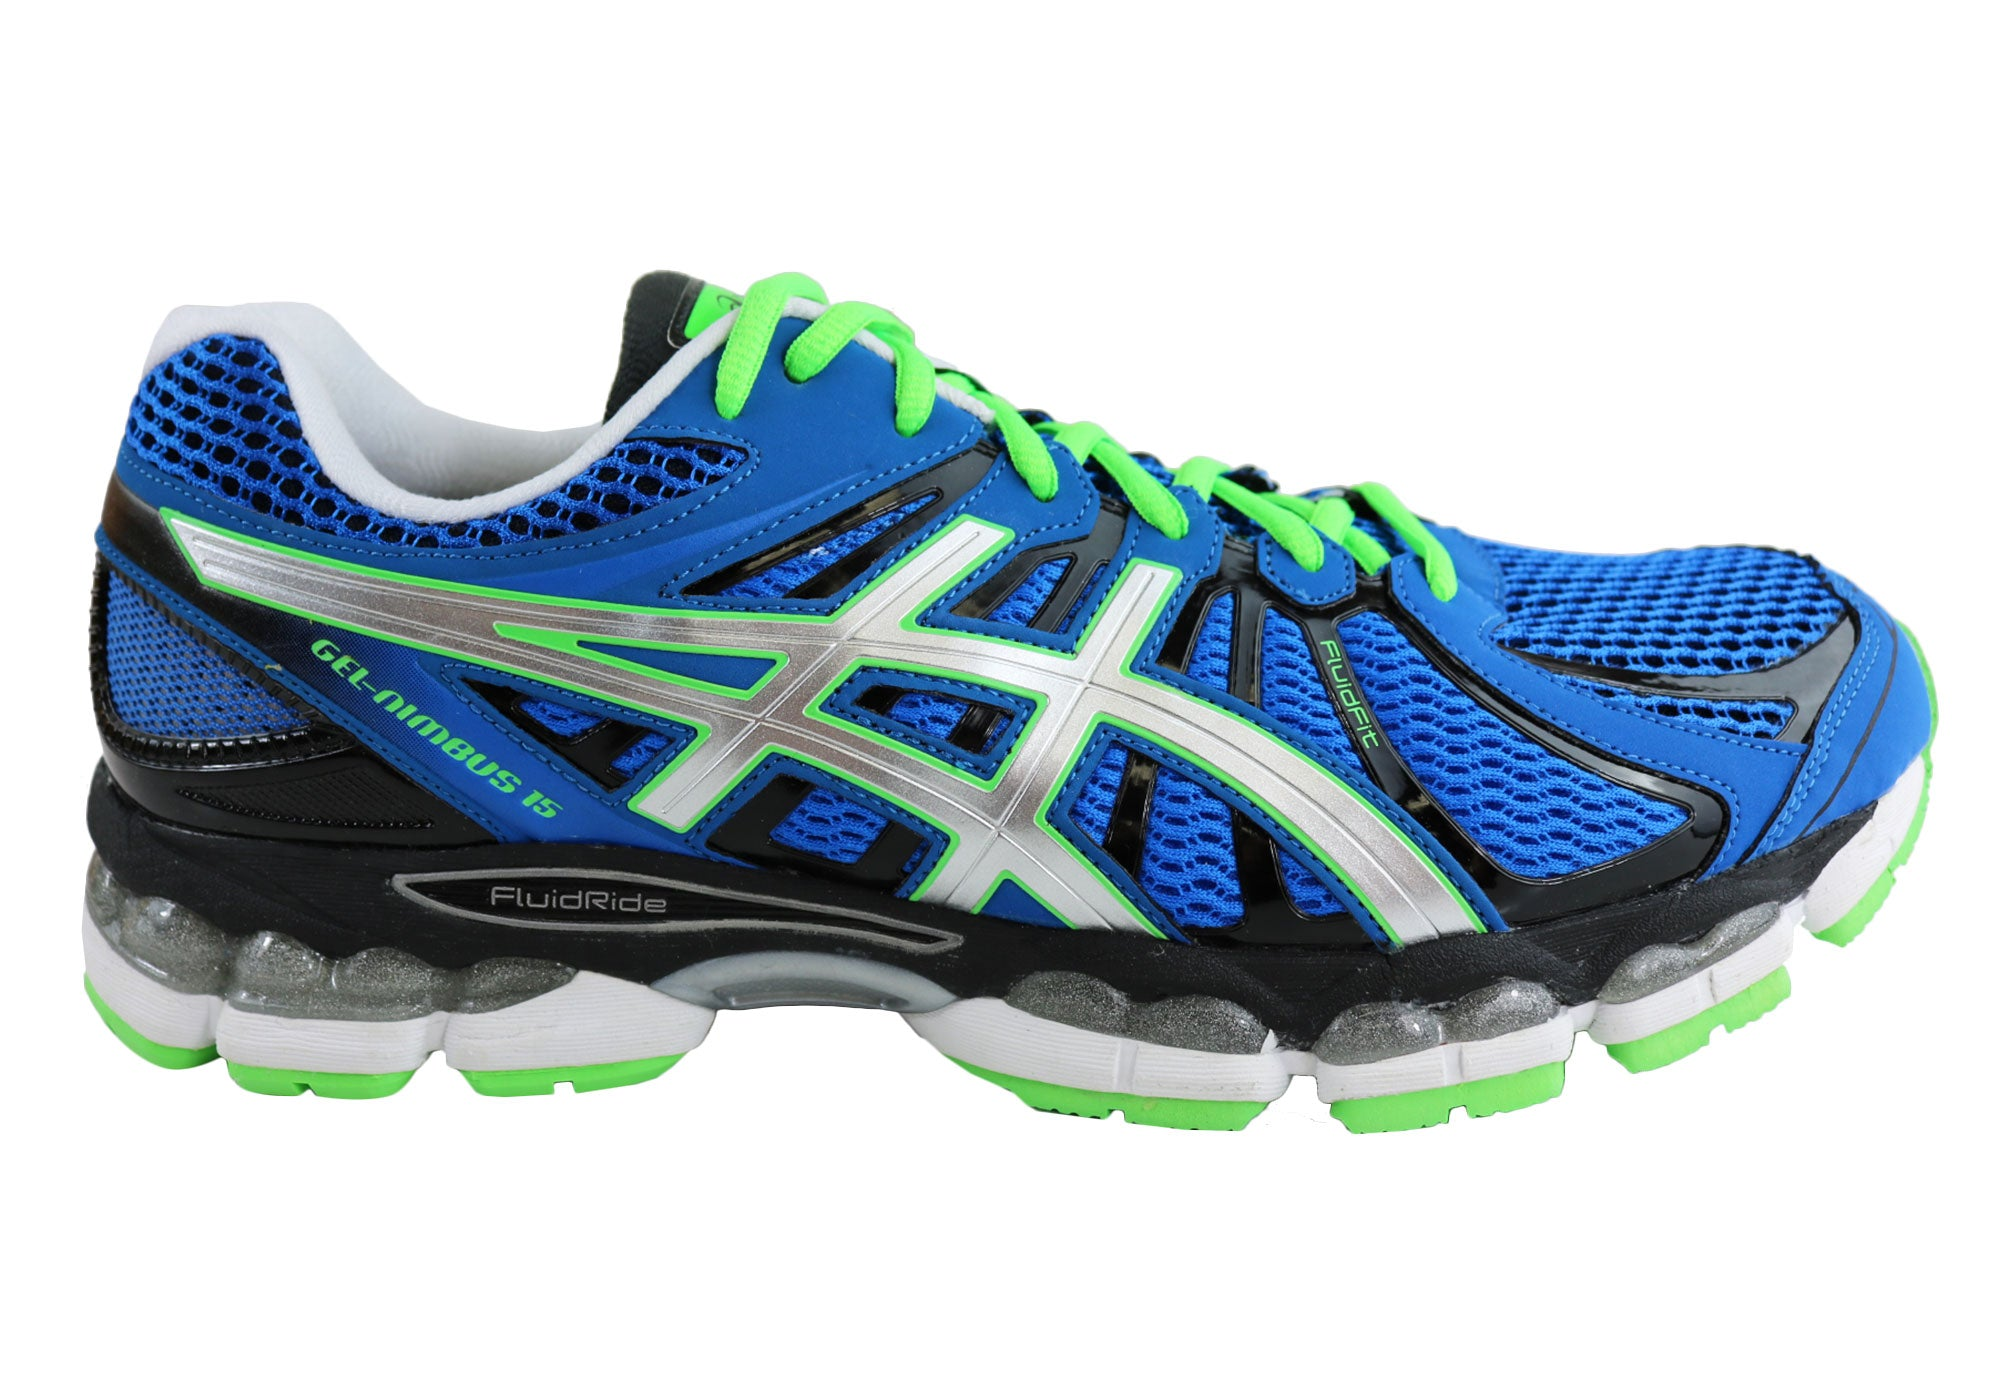 nouvelle arrivee 52385 0256c Asics Gel Nimbus 15 Mens Premium Cushioned Sport Running Shoes